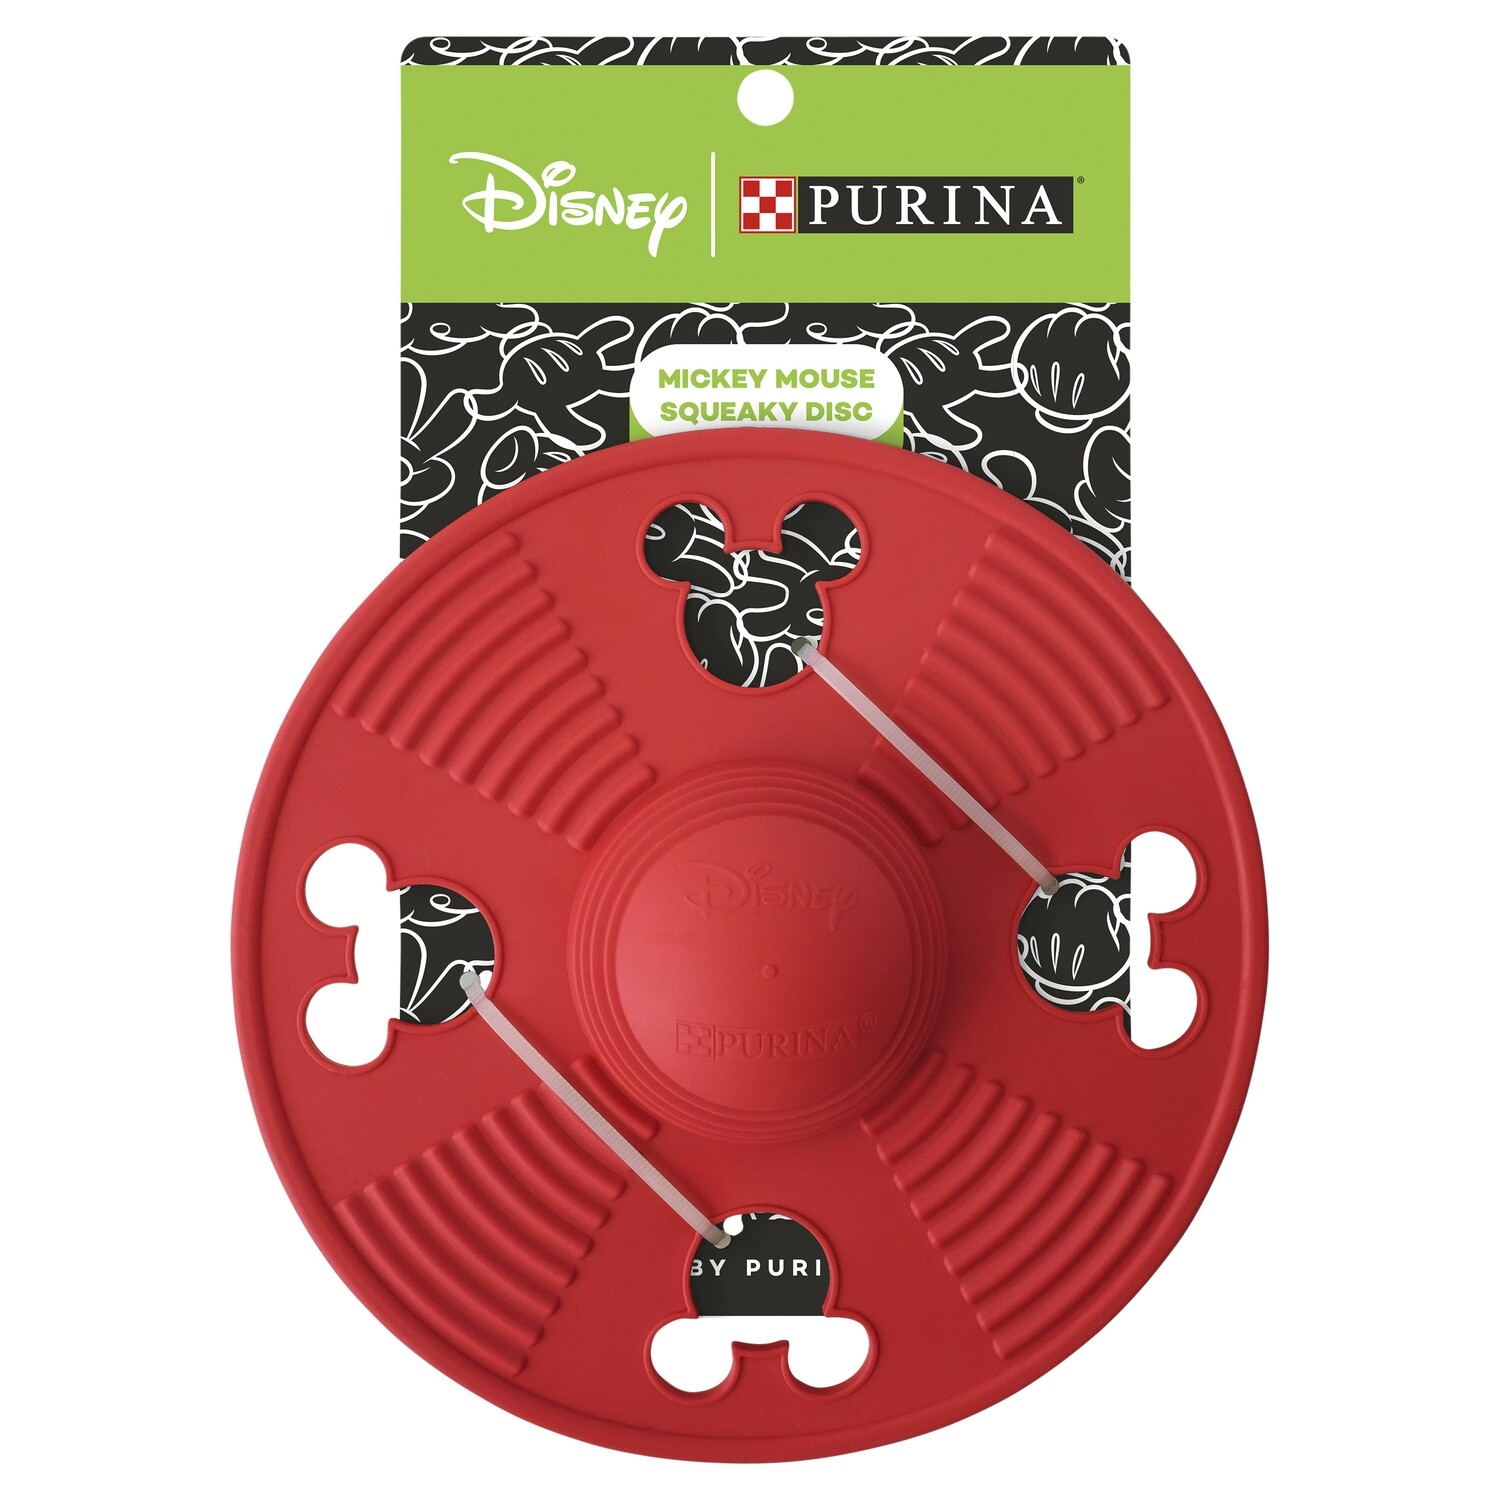 Purina Disney Mickey Mouse Squeaky Disc Dog Toy